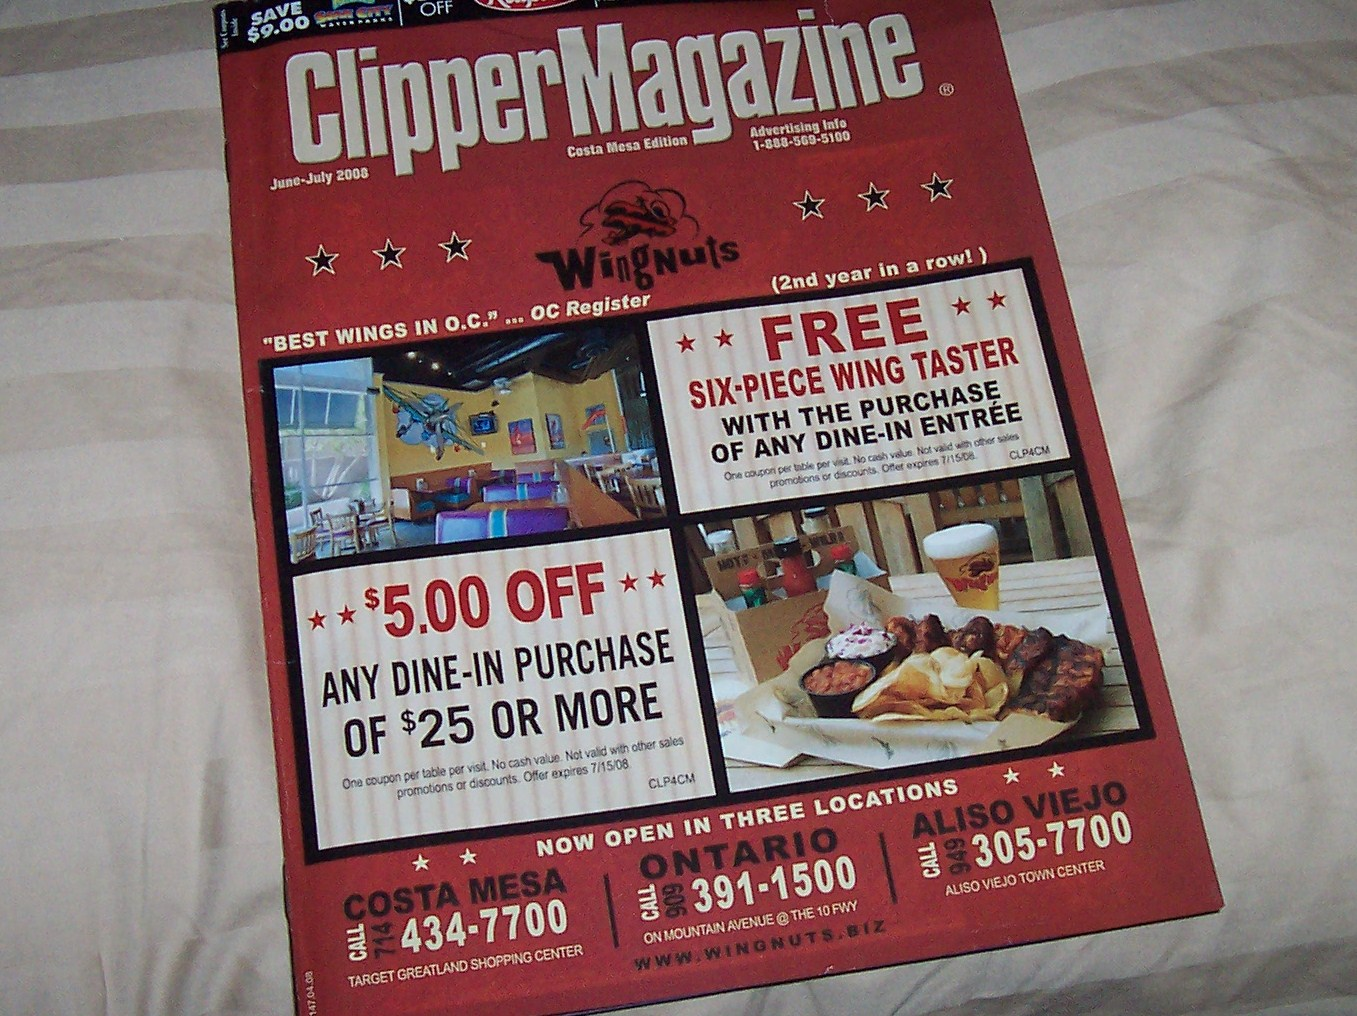 picture about Clipper Magazine Printable Coupons called Clipper journal printable coupon codes / Apple iphone 5 agreement specials 3g